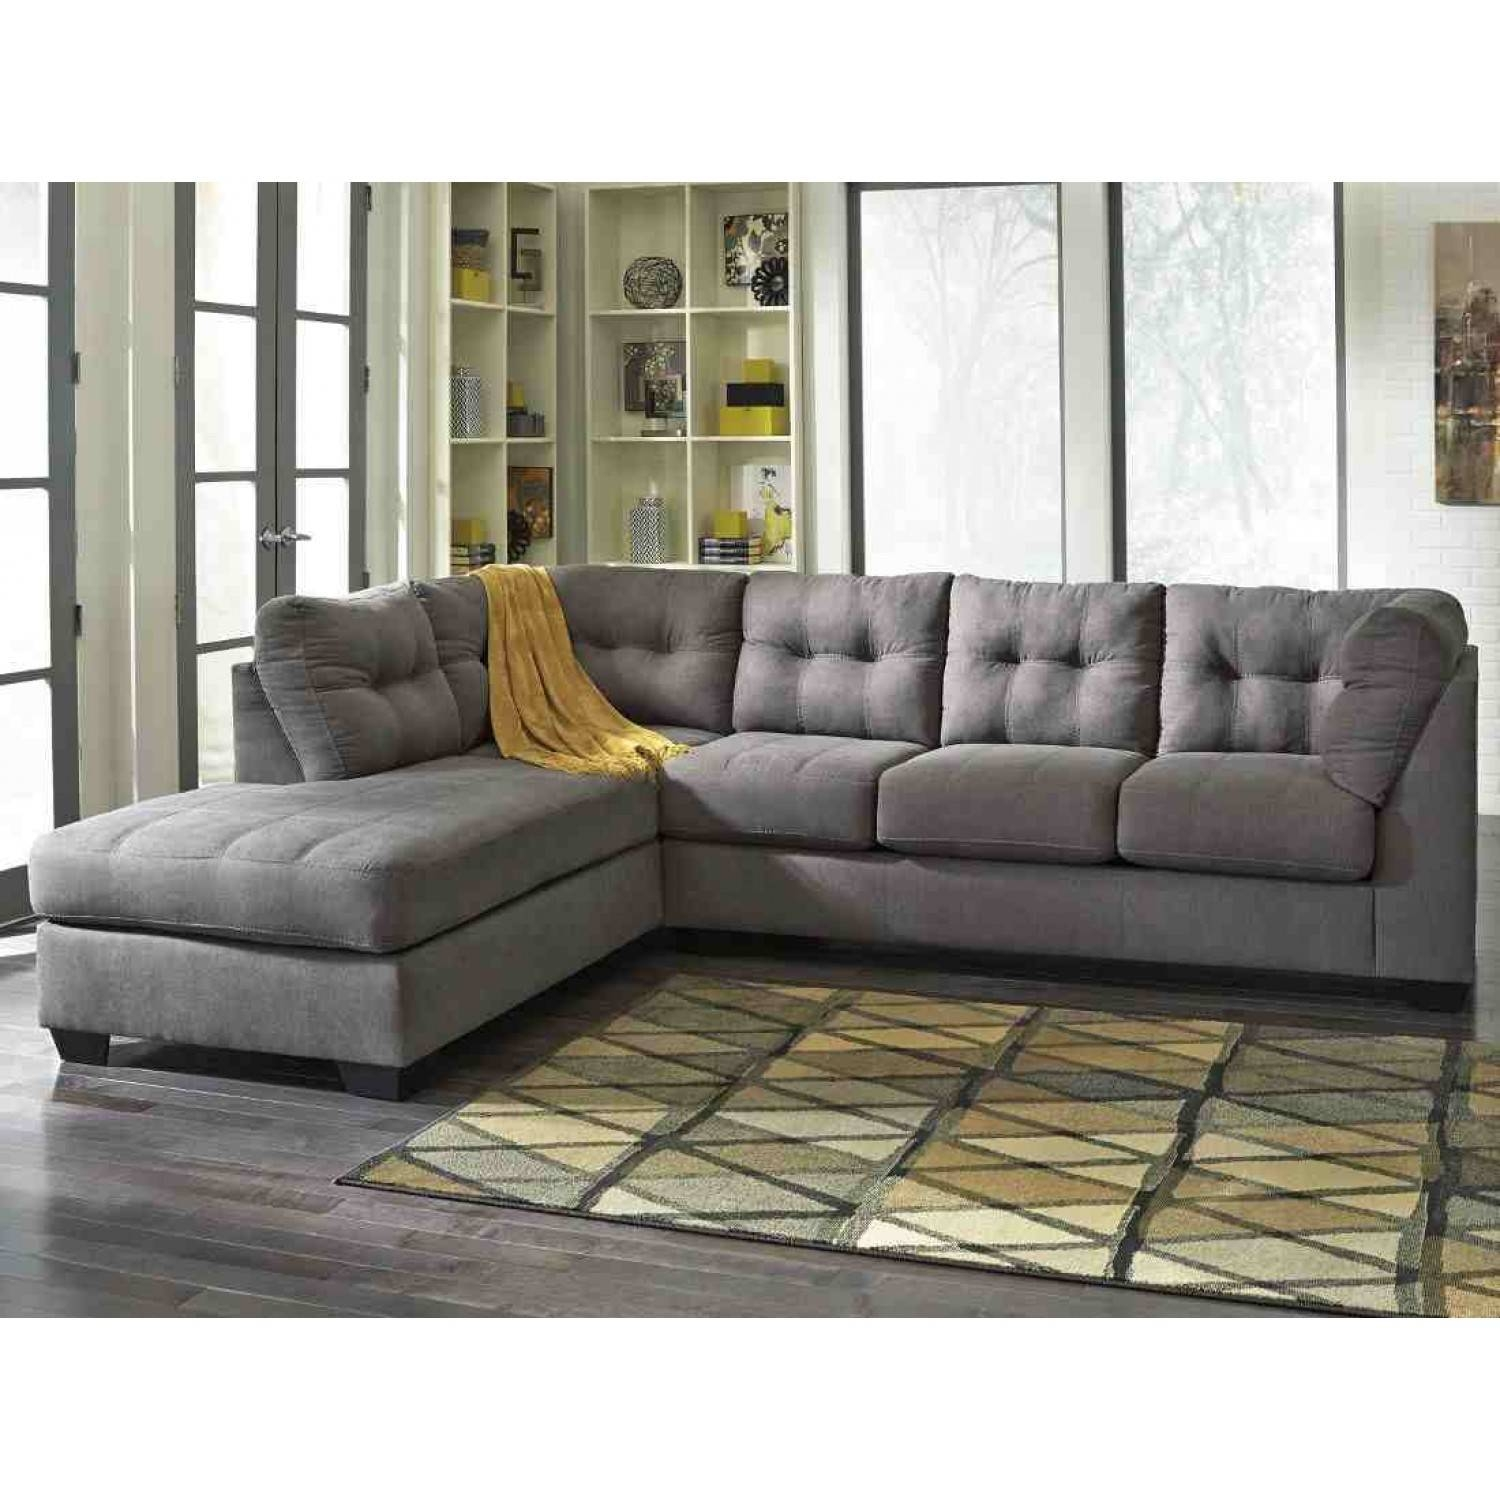 Ashley Furniture Maier Sectional In Charcoal | Local Furniture Outlet inside Ashley Furniture Gray Sofa (Image 8 of 30)